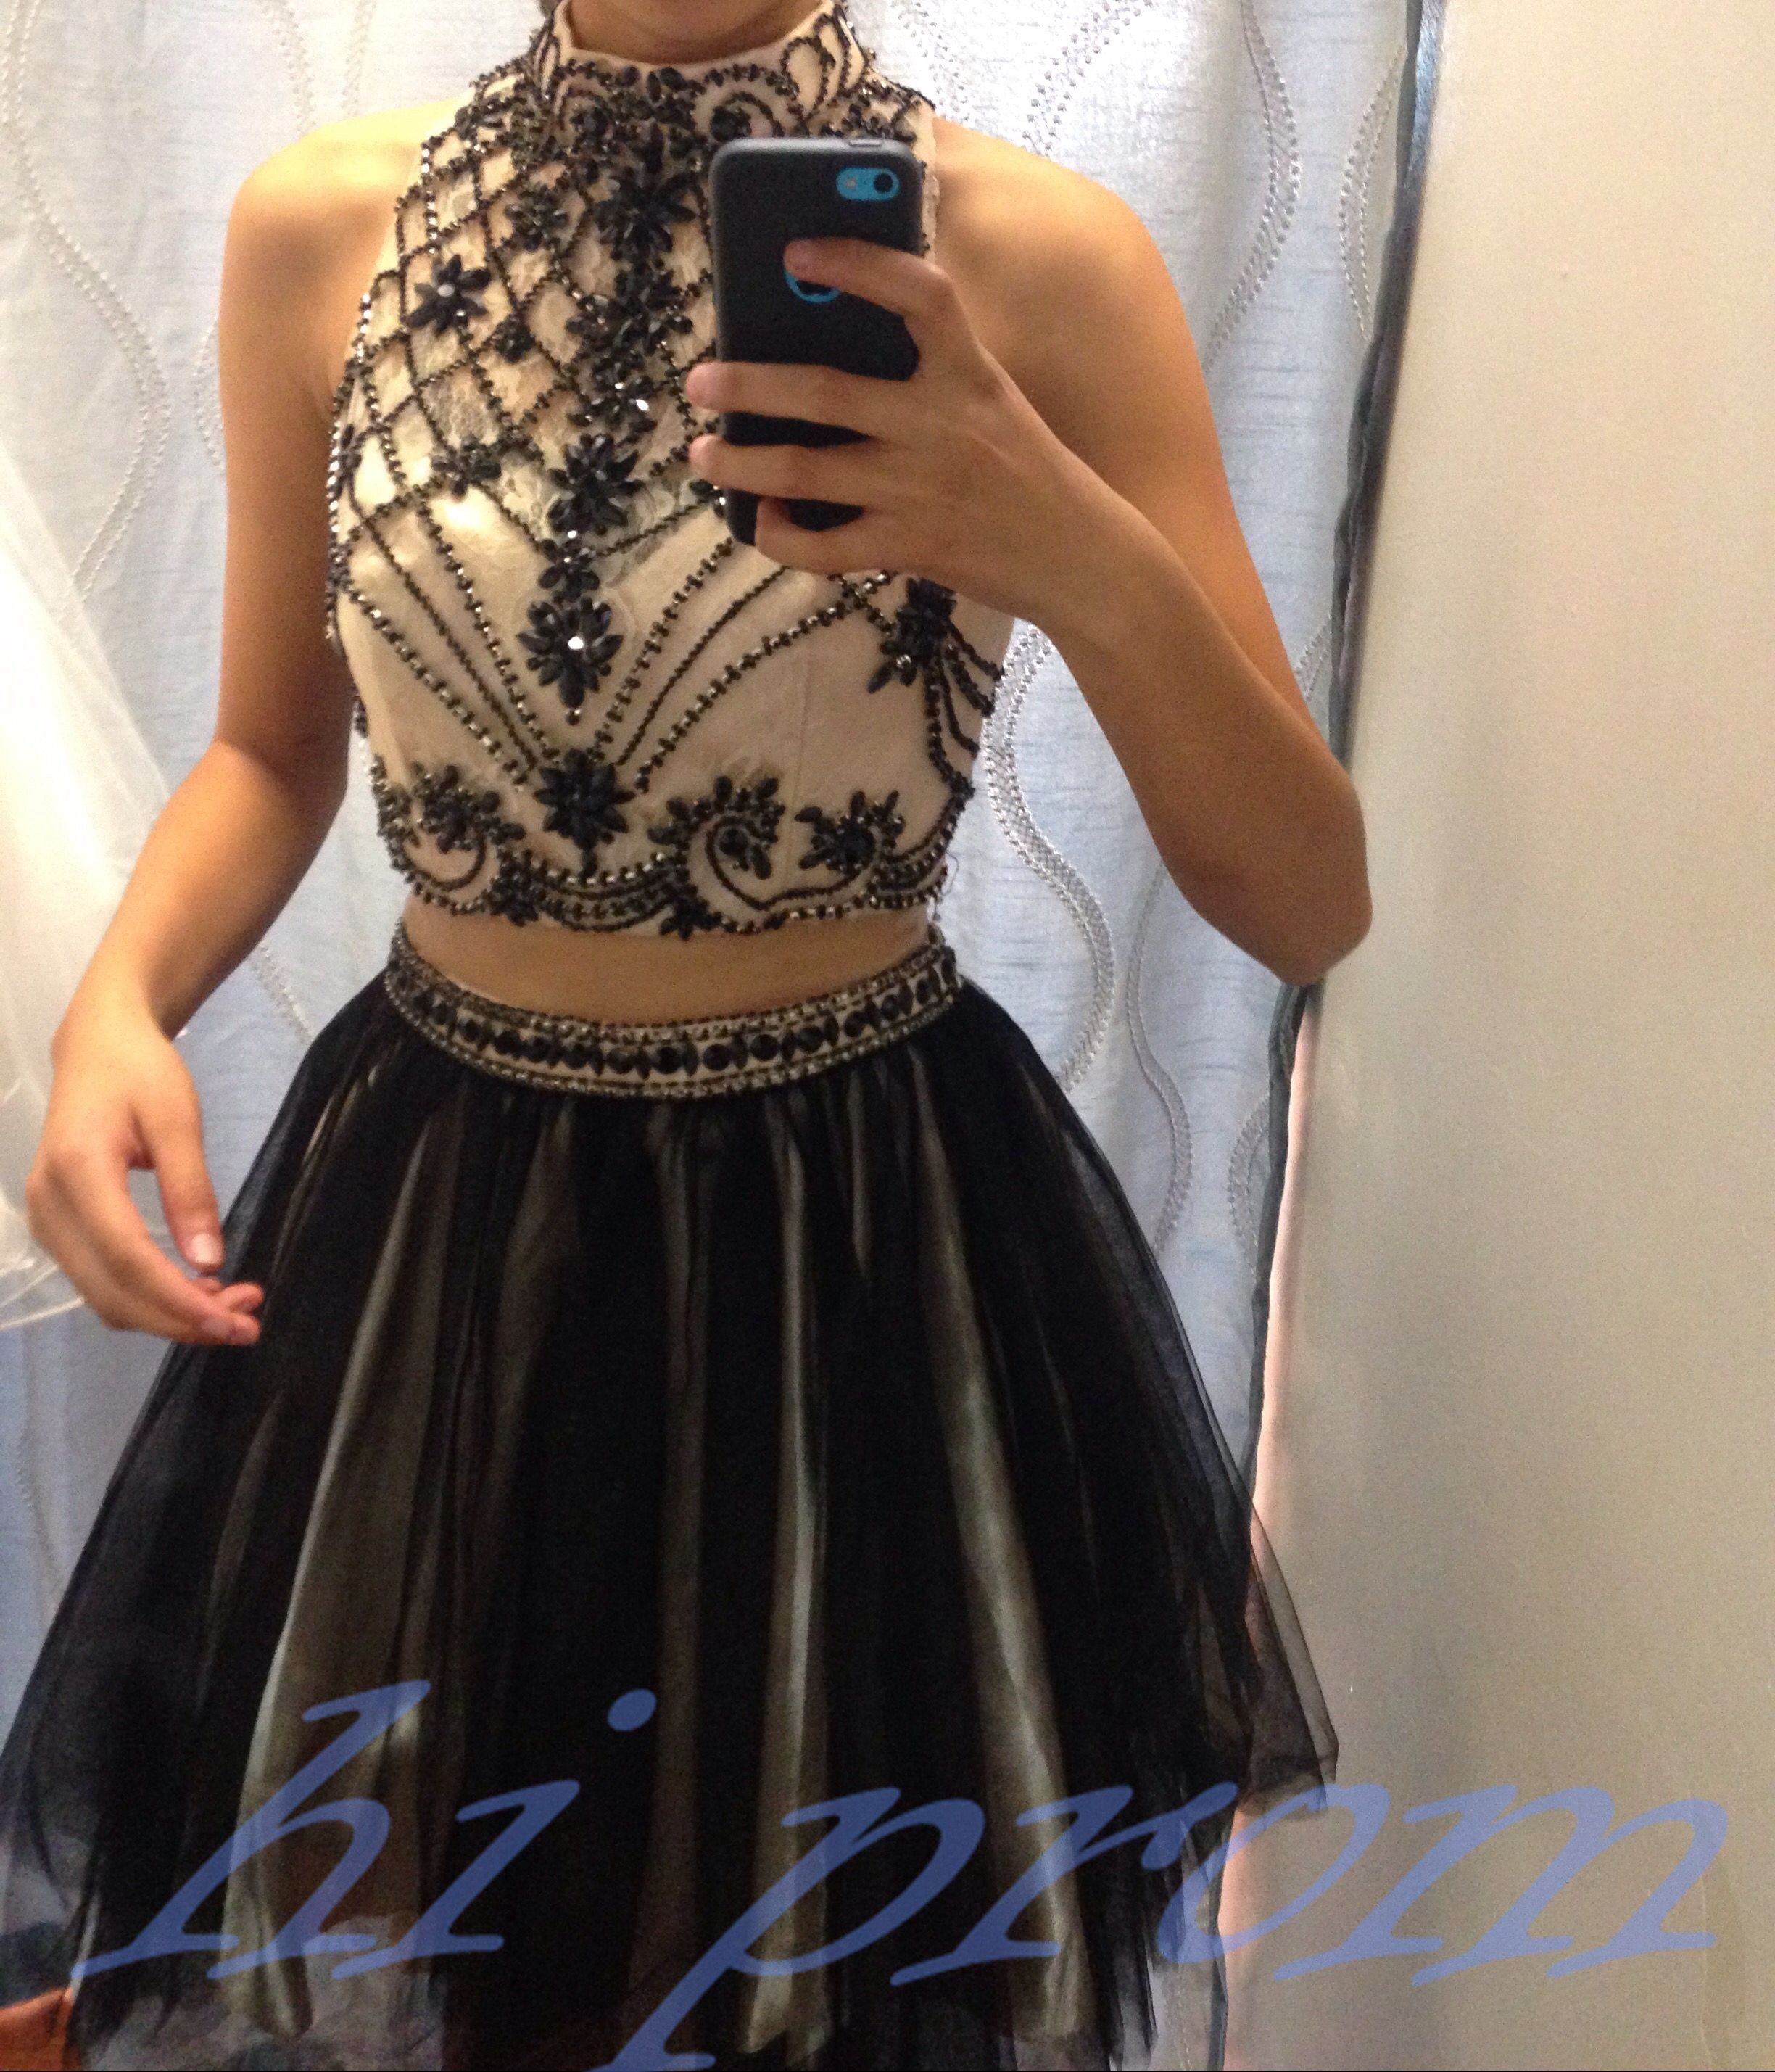 Black Homecoming Dress 2 Piece Homecoming Dresses Black Beading Homecoming Gowns Short Prom Gown Prom Dresses Two Piece Black Homecoming Dress Piece Prom Dress [ 2857 x 2448 Pixel ]